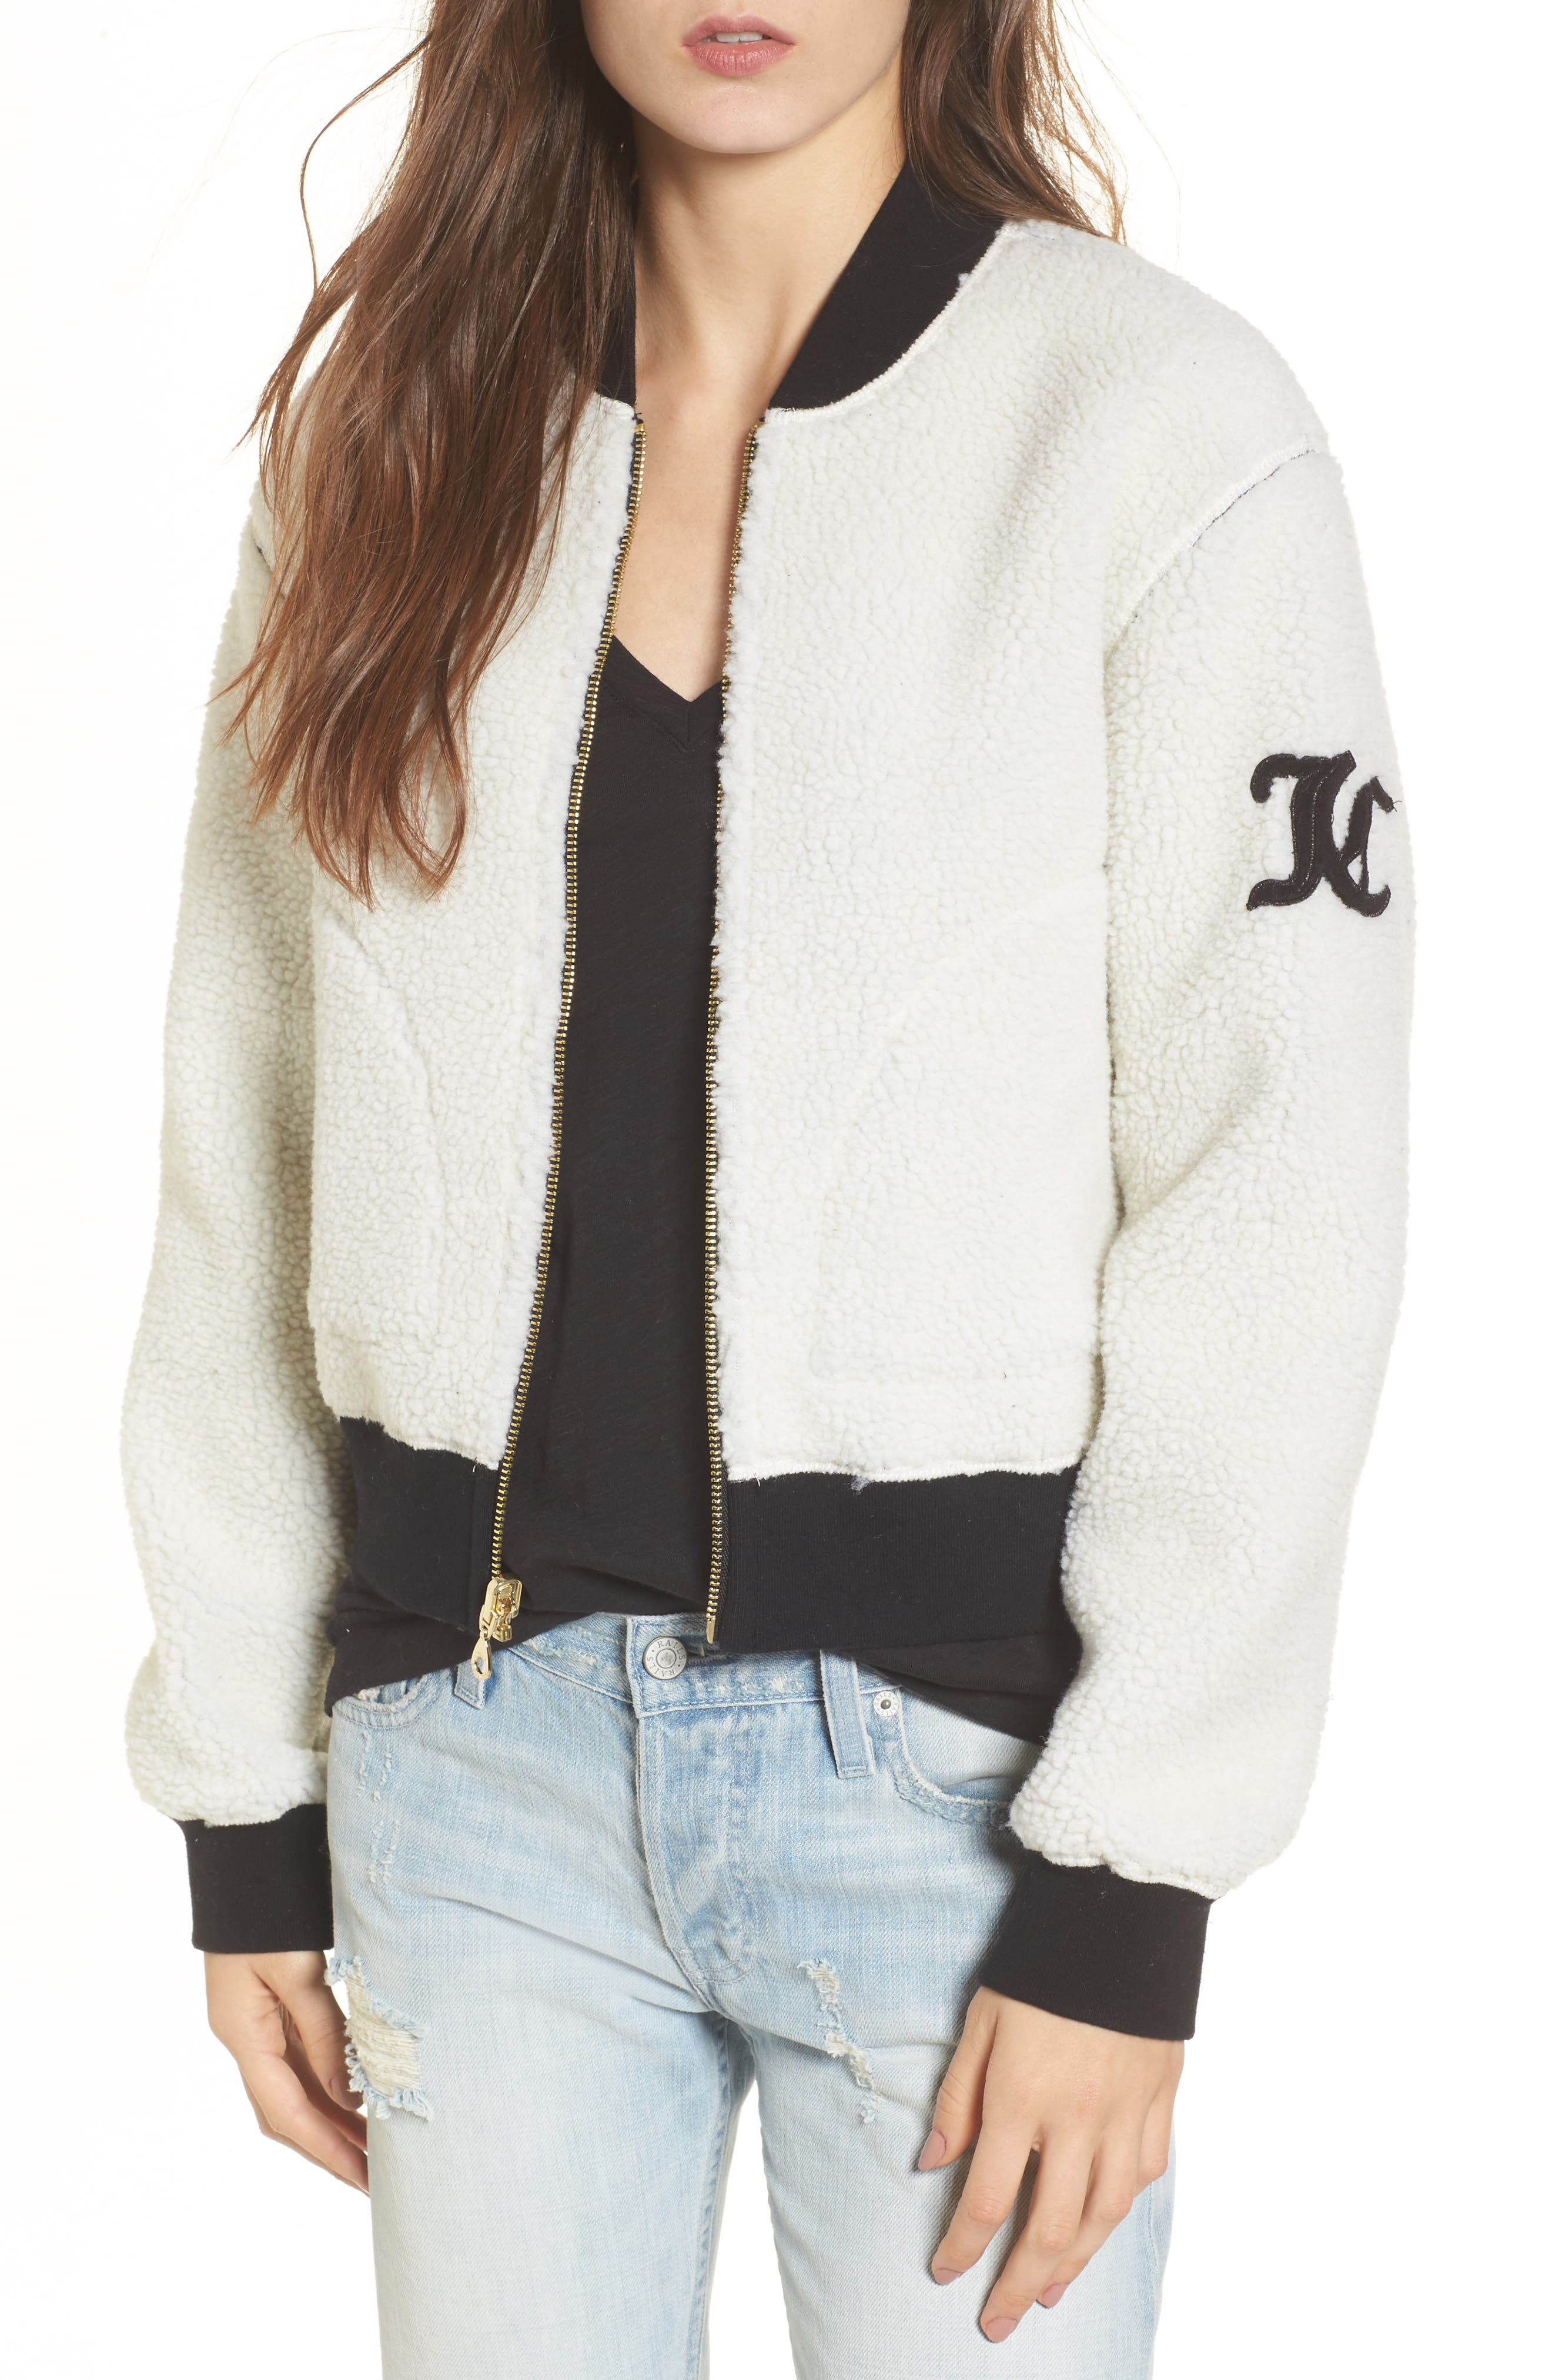 Juicy Couture Reversible Track Jacket